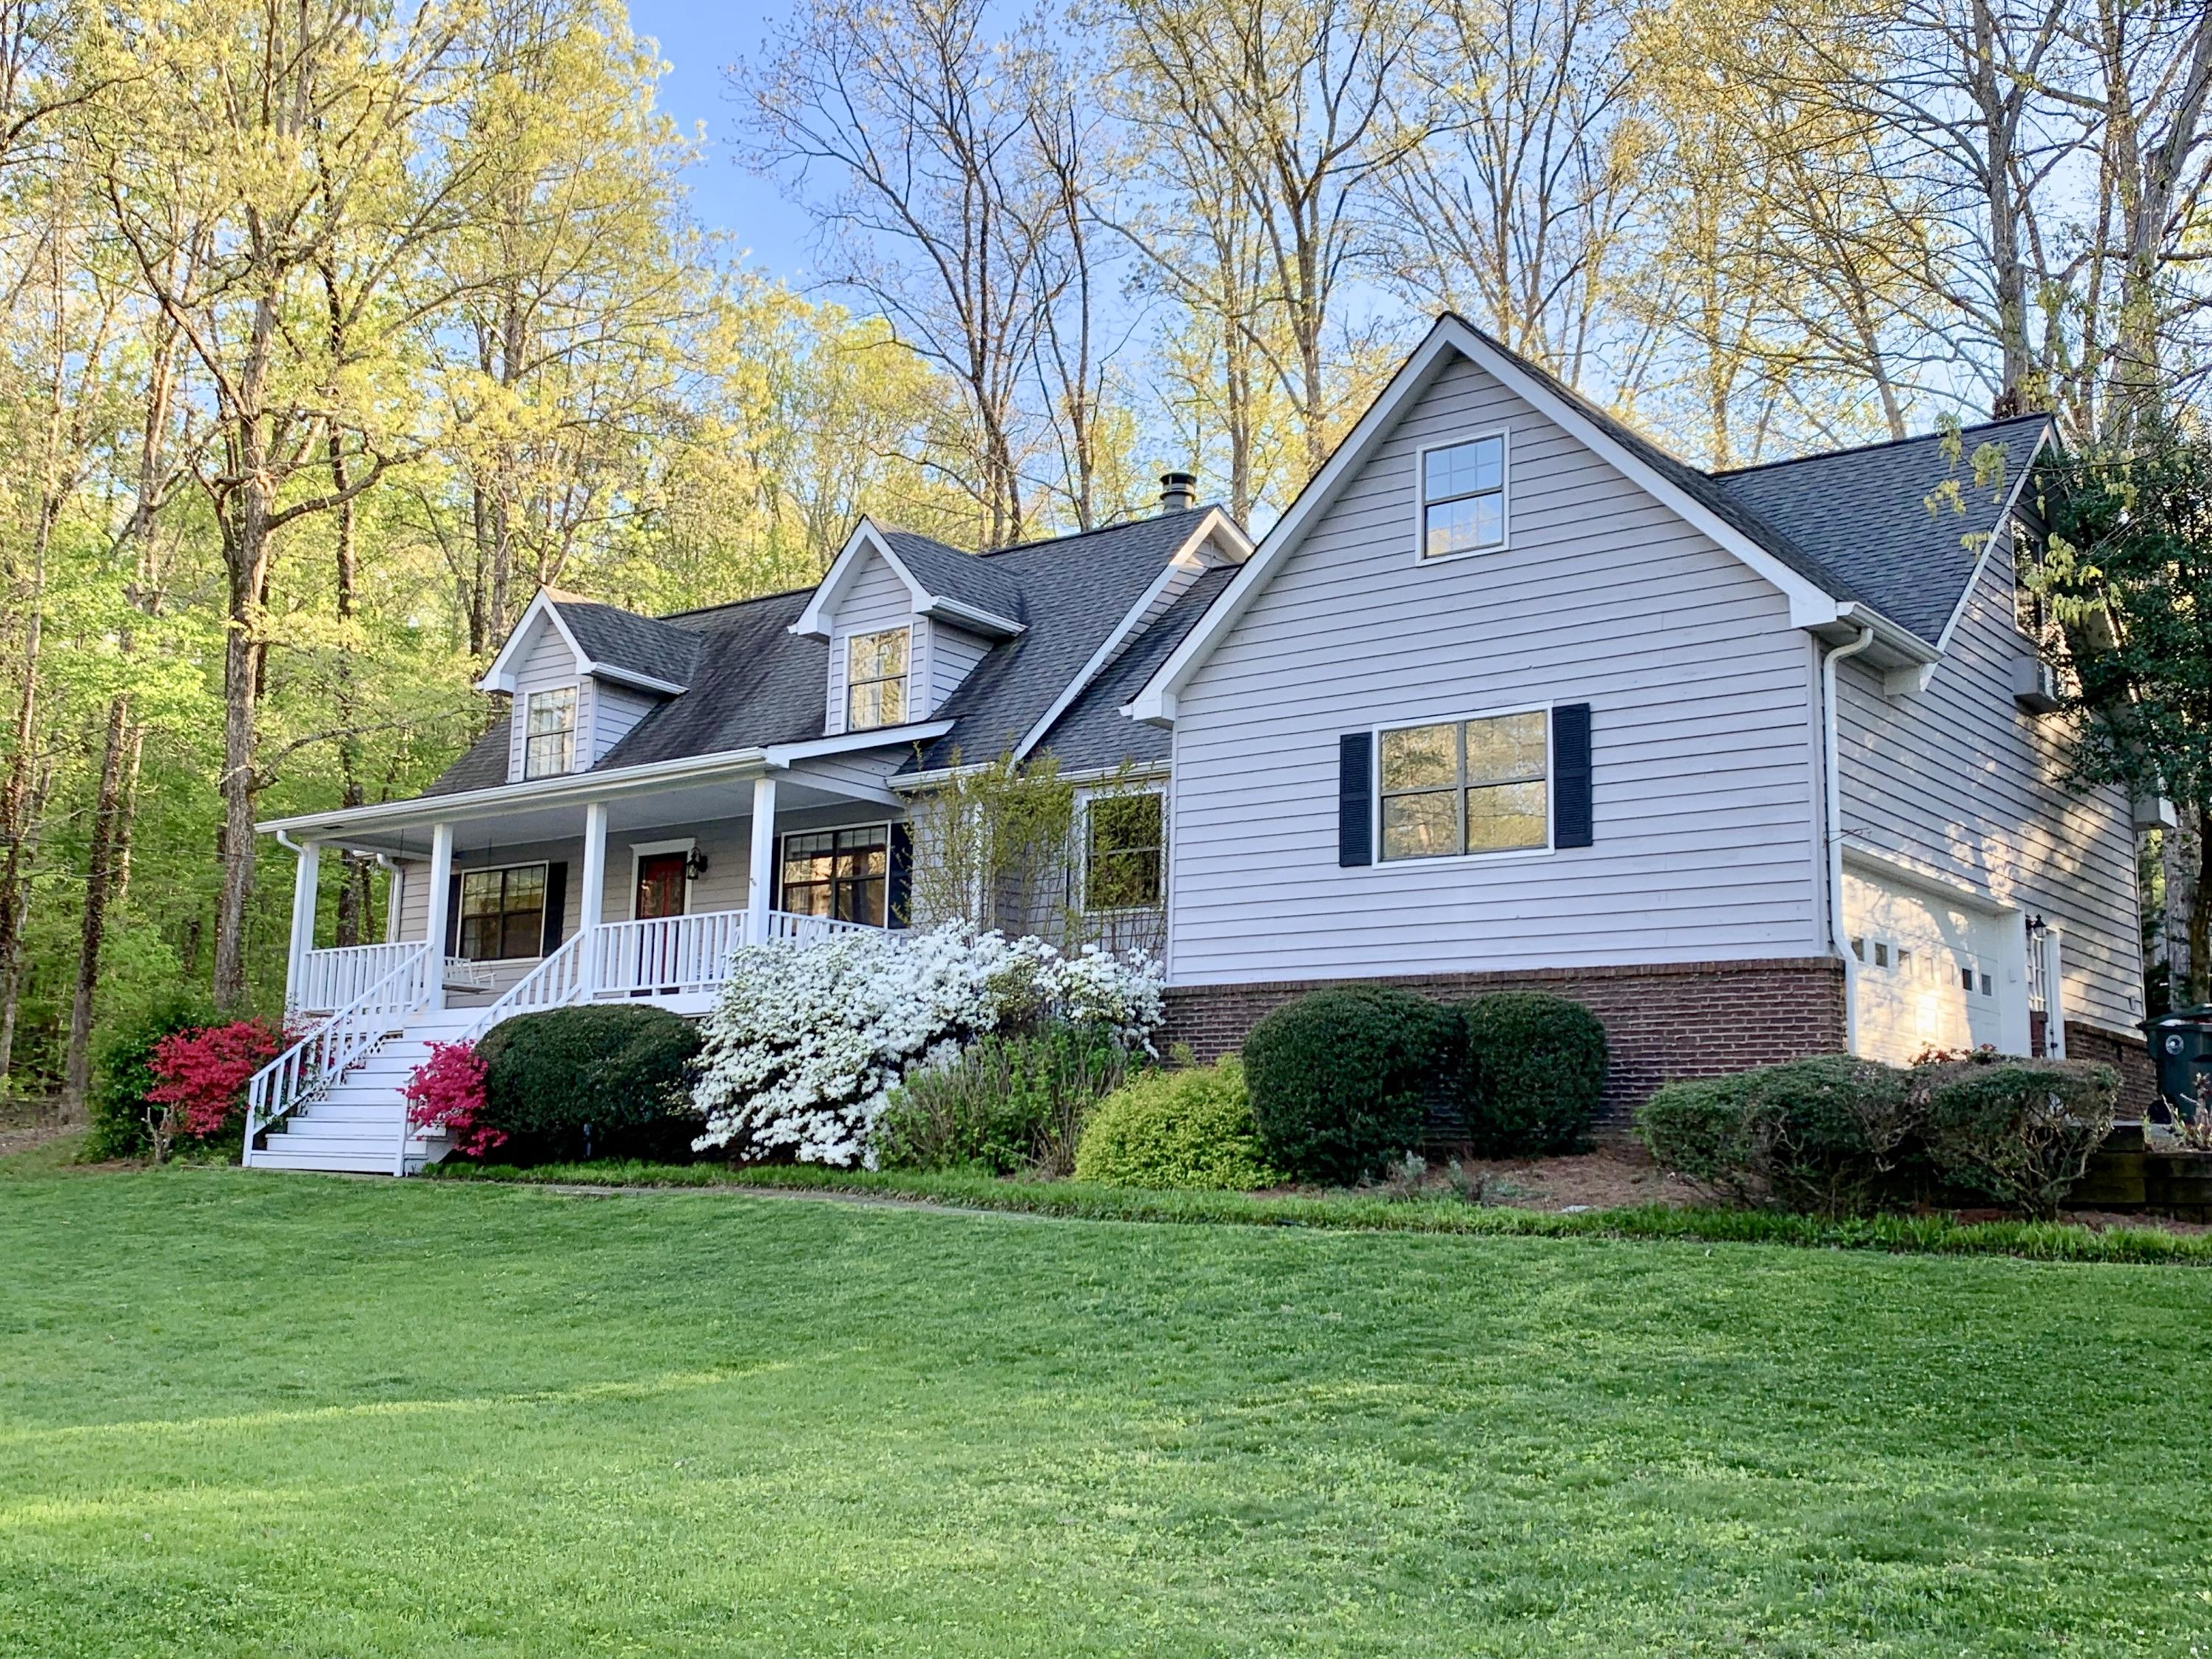 604 Dunsinane Rd, Signal Mountain, TN 37377